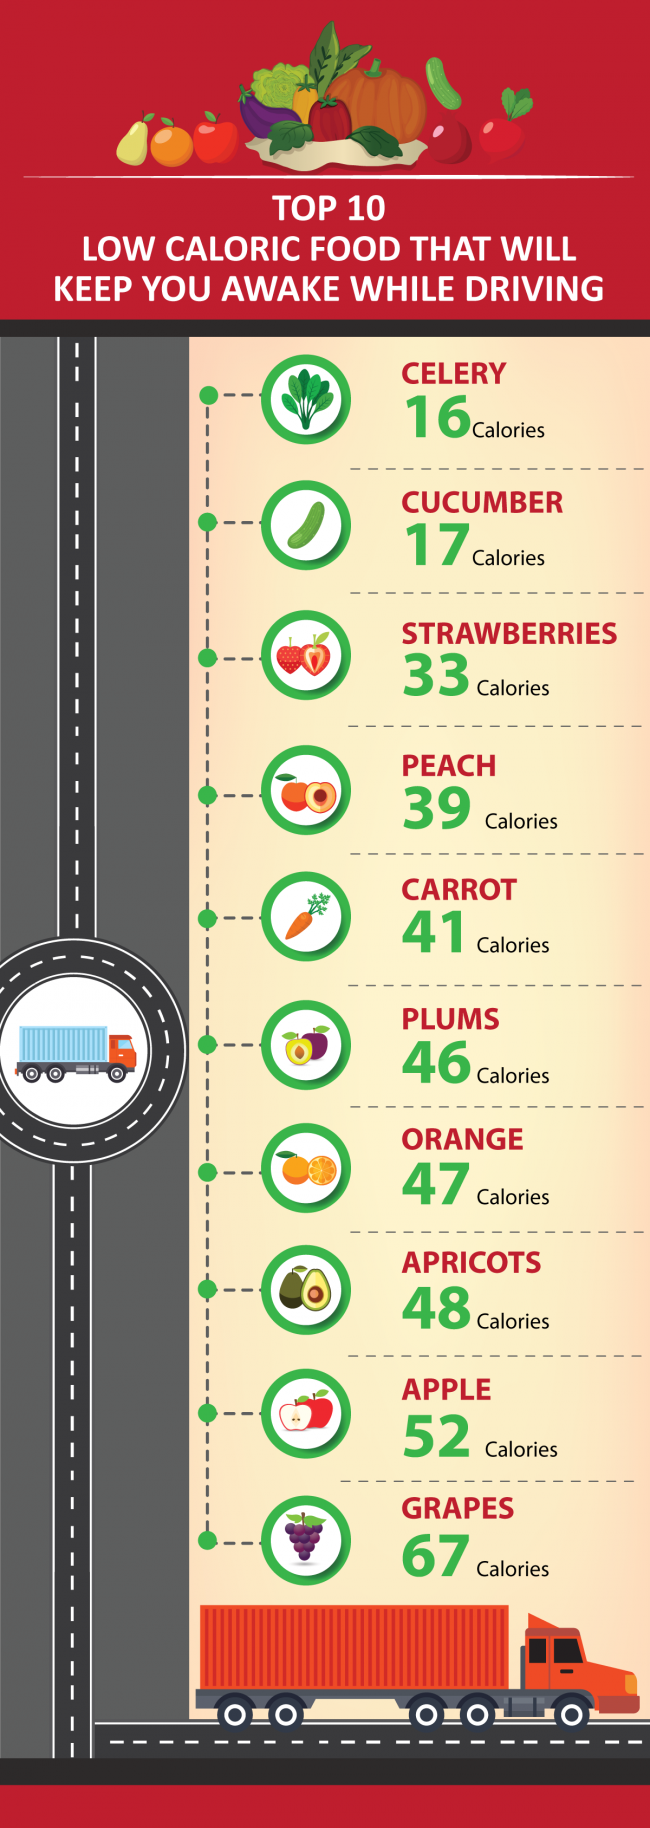 ingographic-top-10-low-caloric-food-that-will-keep-you-awake-while-driving